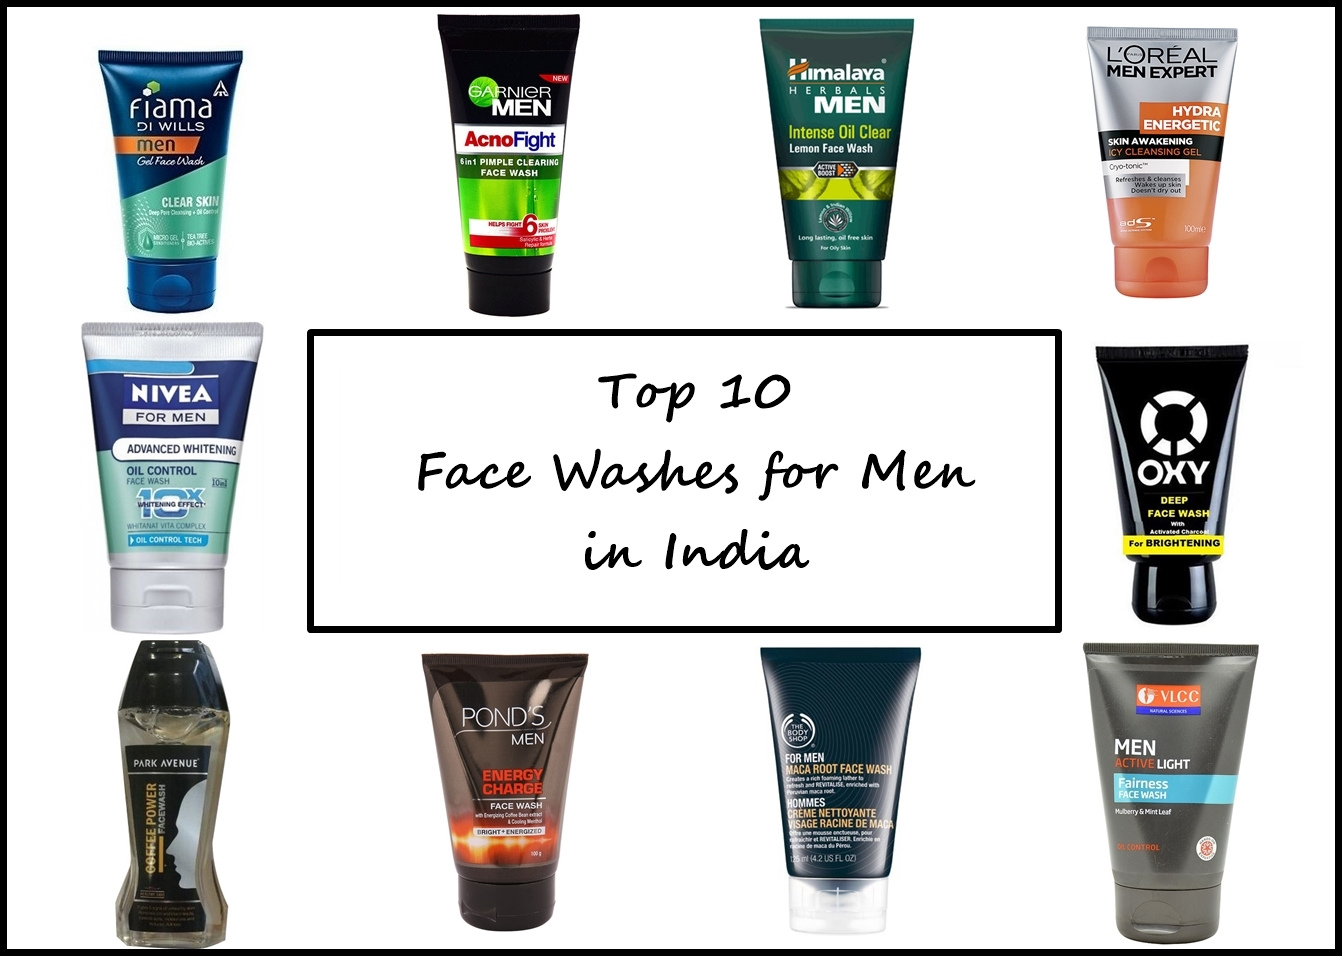 Top 10 Face Washes For Men In India Prices Buy Online Ponds Energy Charge Cream 20ml